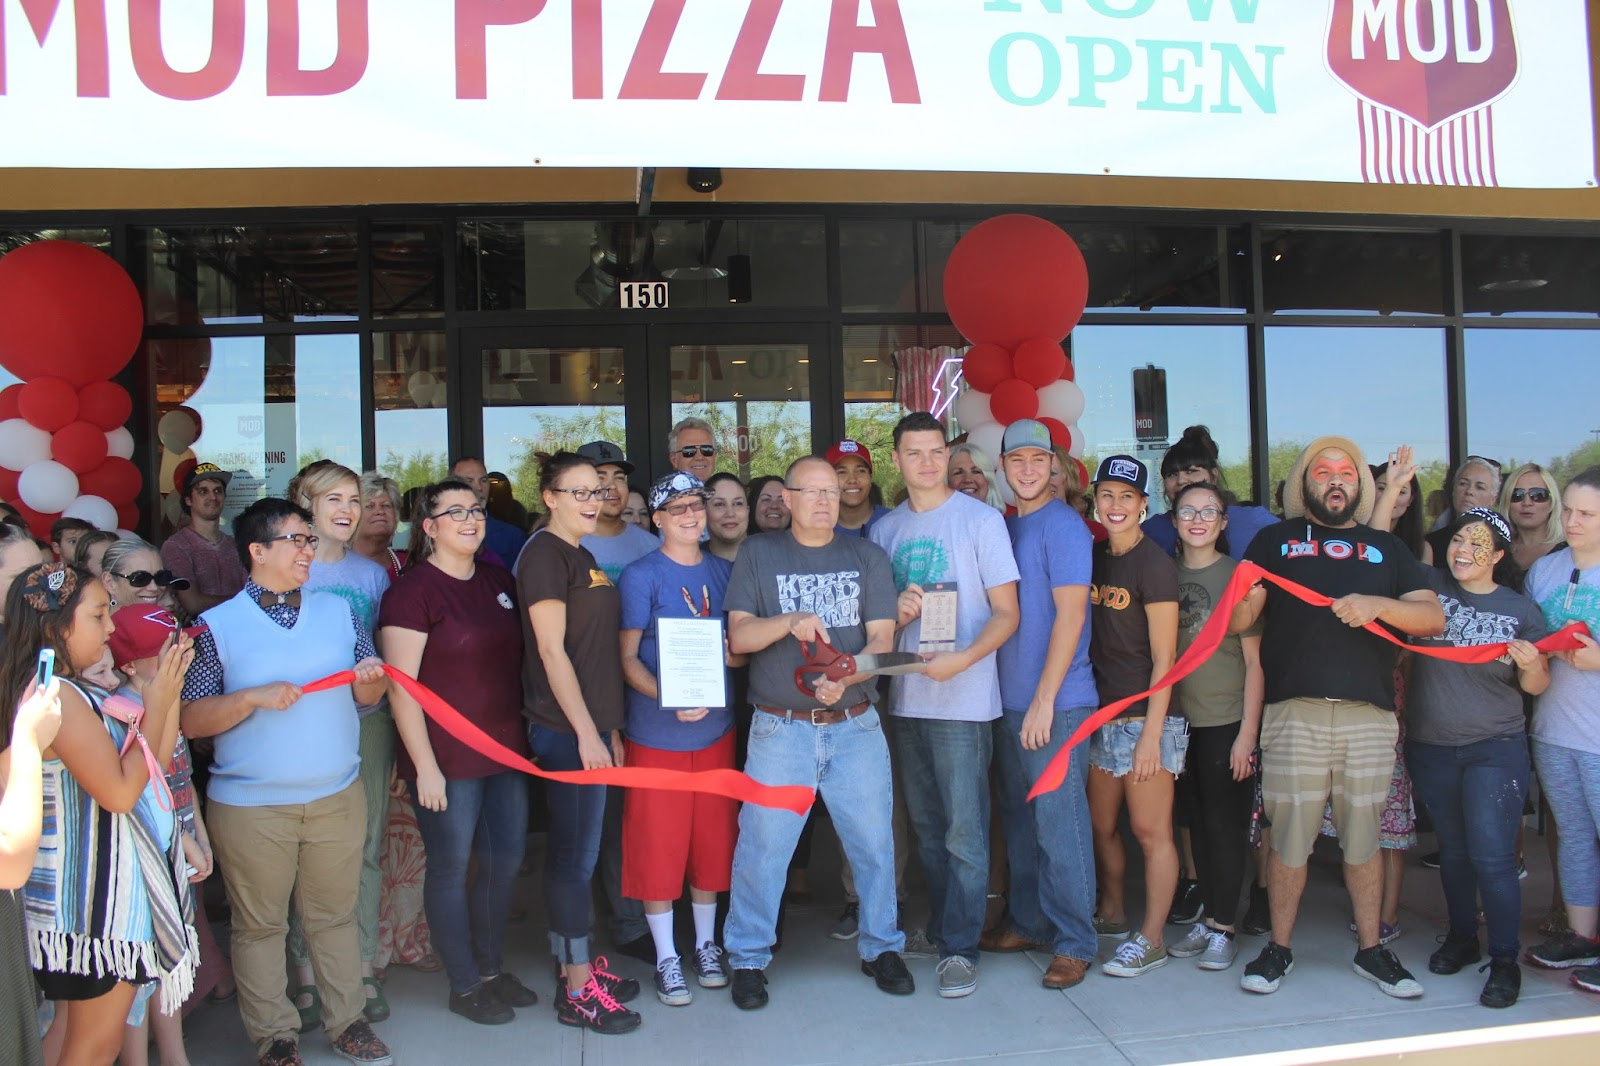 Congratulations to MOD Pizza, located at 10580 N. Oracle Road #150, on their Grand Opening! MOD Pizza has been serving individual, artisan-style pizzas and salads superfast since 2008.  Any toppings, same price.